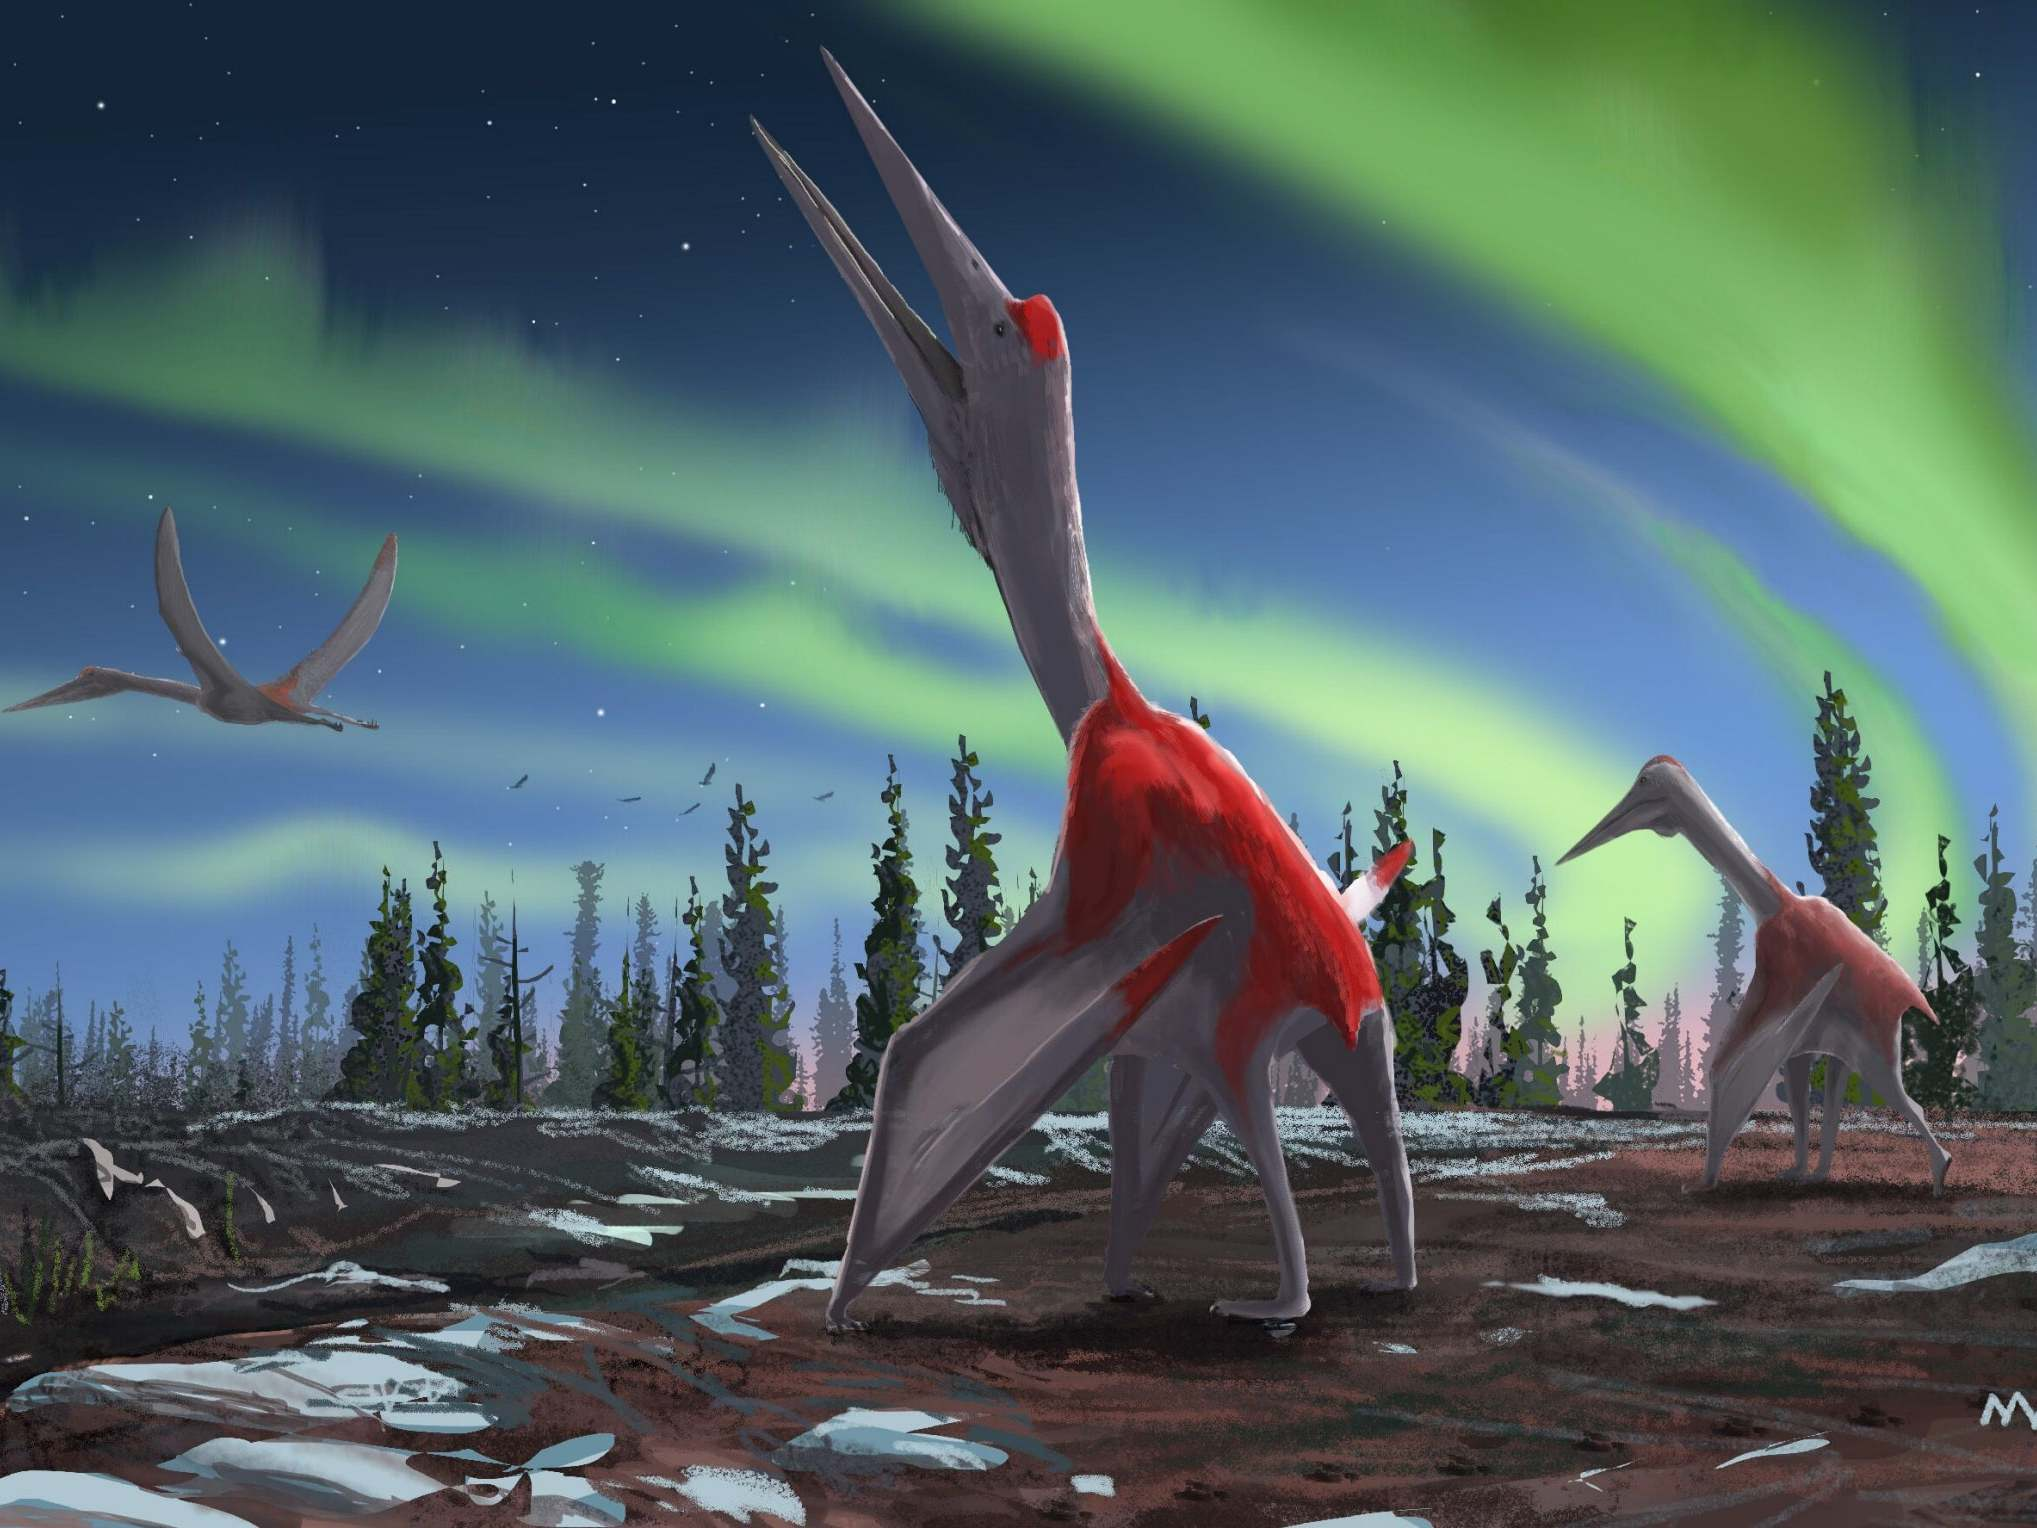 'Frozen Dragon of the North': New species of flying creature the size of small plane identified in Canada